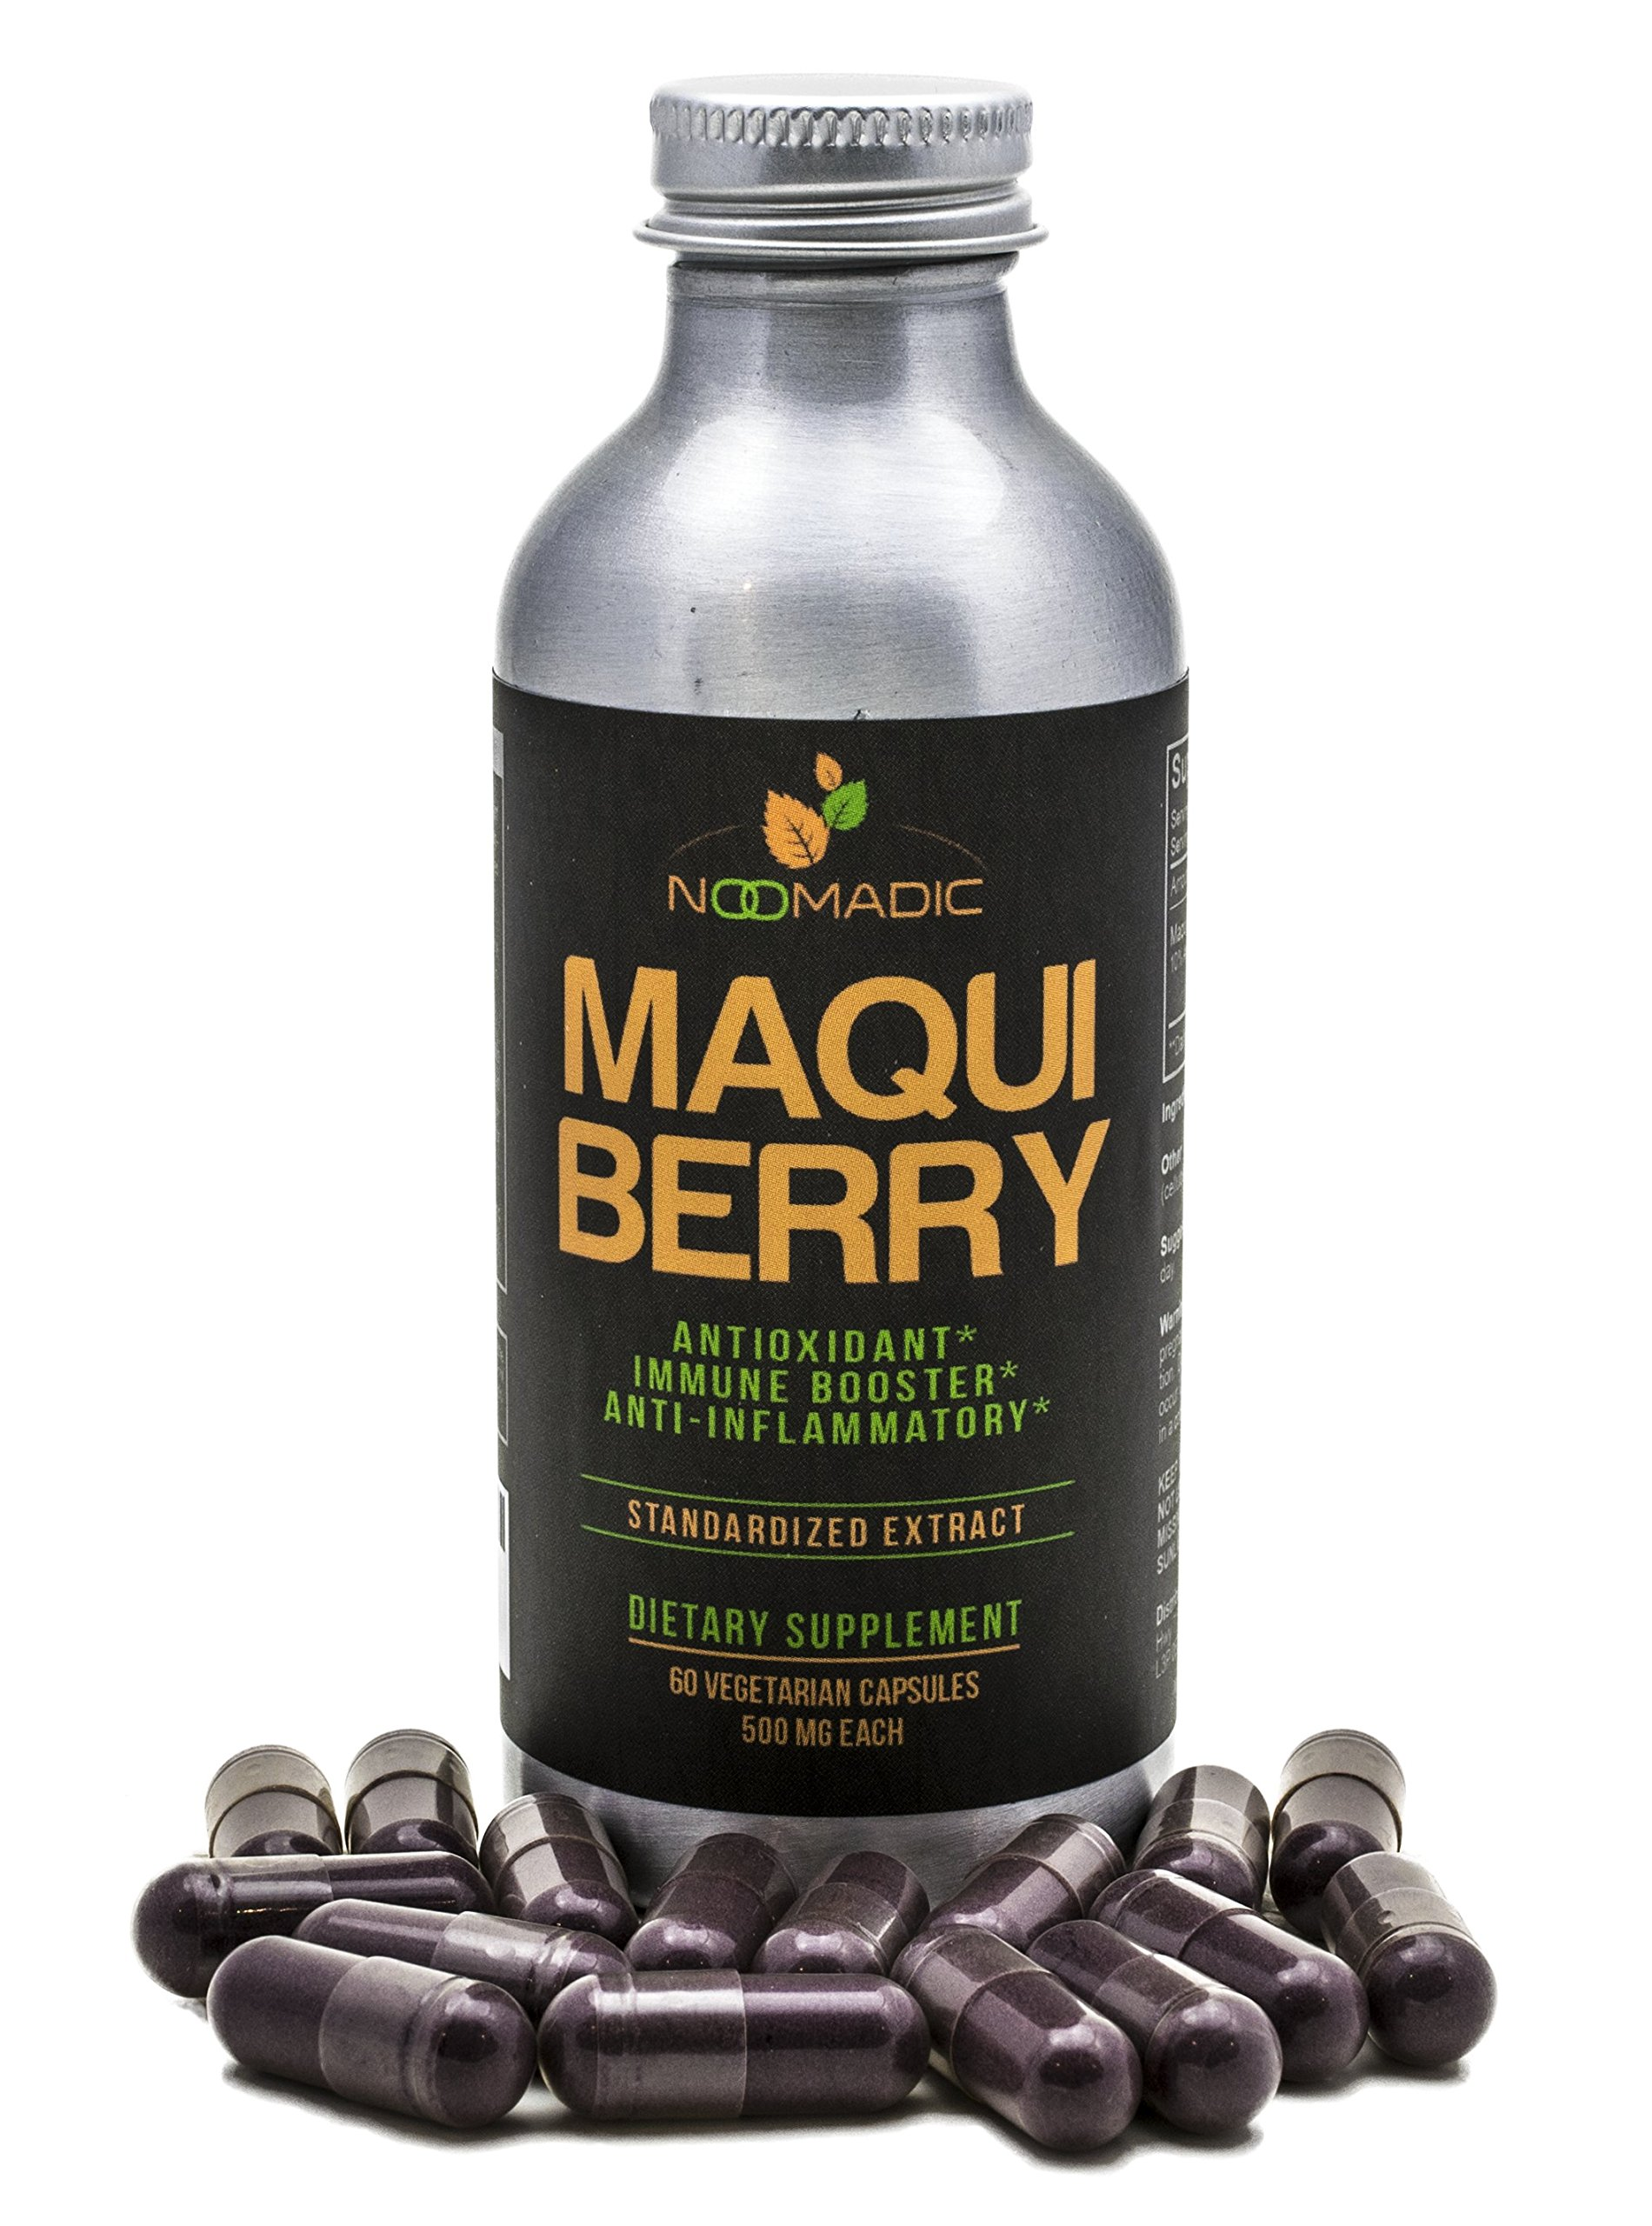 Noomadic Maqui Berry Capsules, Antioxidant (High ORAC), Anti-Aging, Immune Booster, 10% Anthocyanins, Standardized Extract